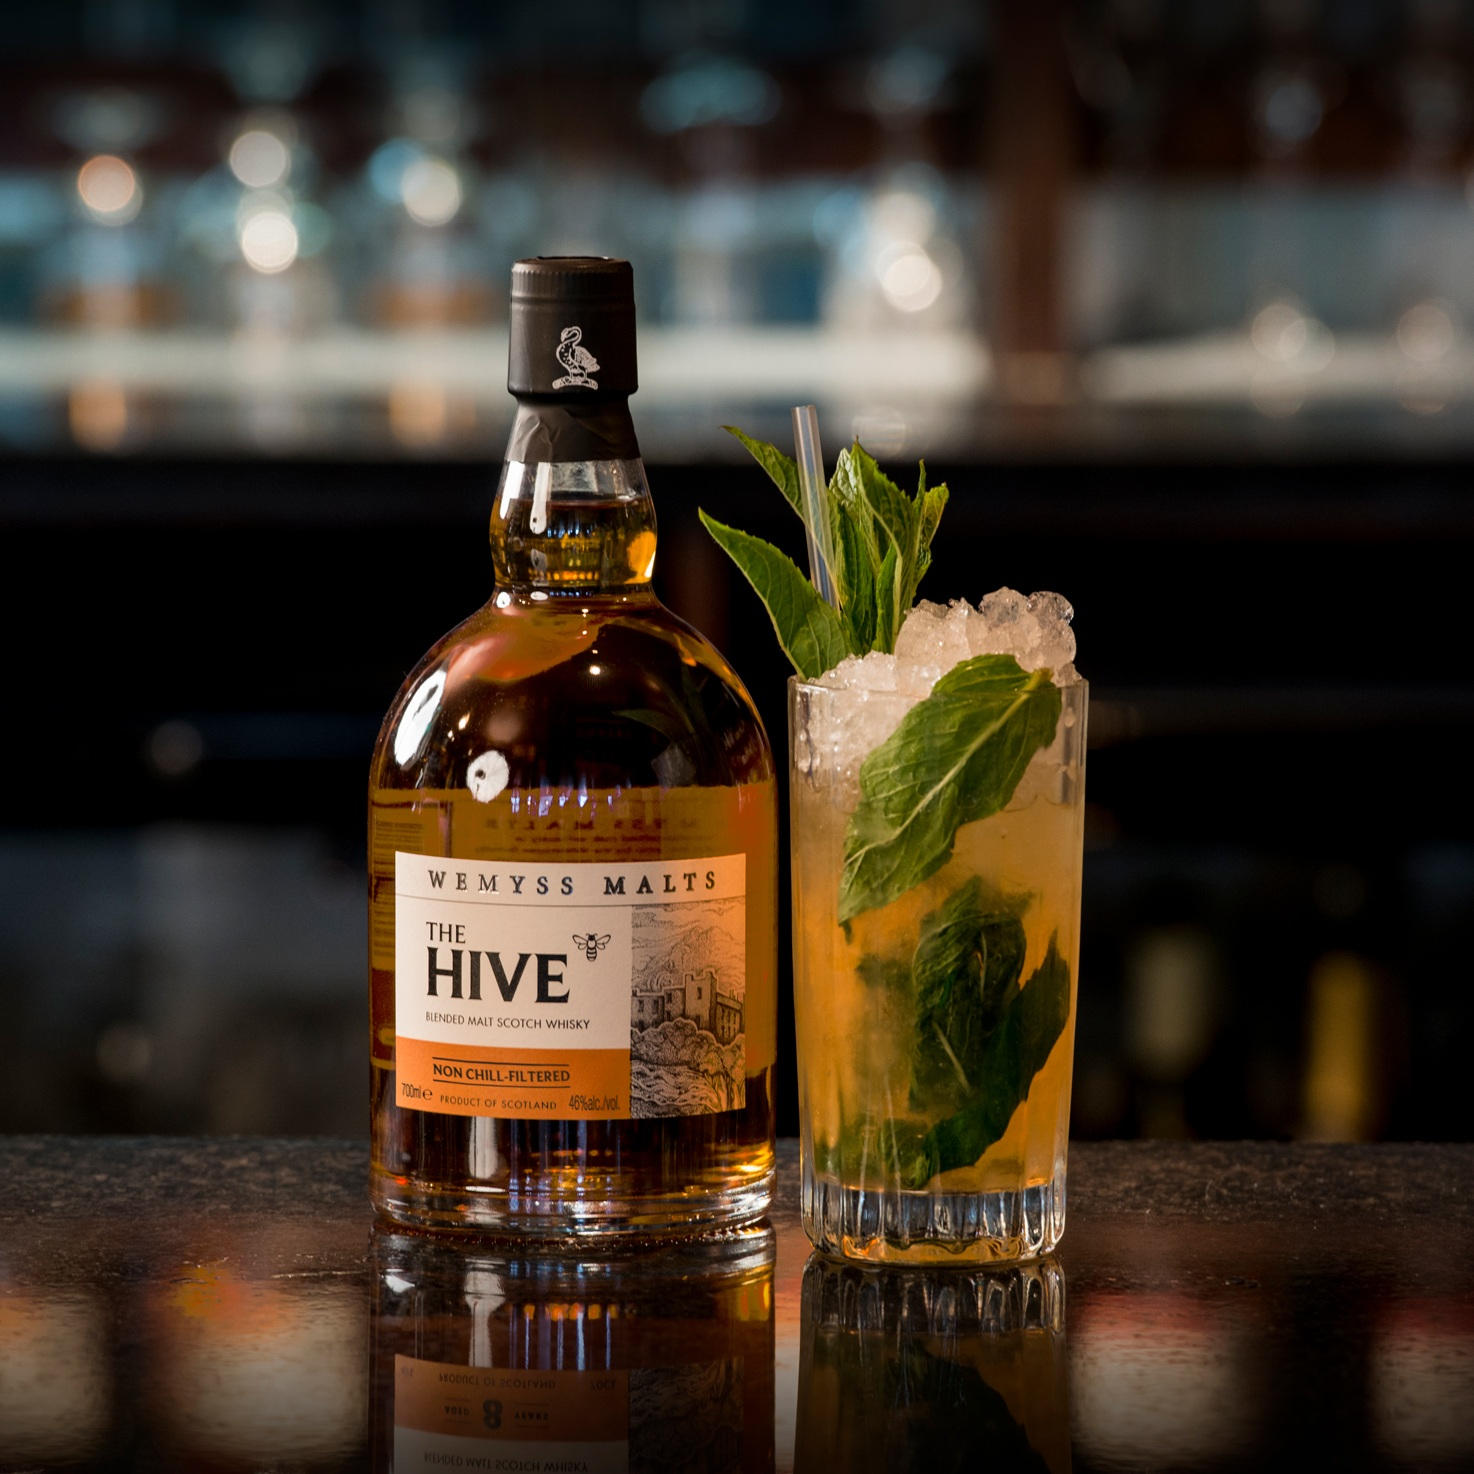 Hive Five Mojito - Ingredients:50ml Wemyss Hive Whisky20ml fresh lime juice12 – 16 fresh mint leaves12ml orange blossom honeyDash of ginger aleMethod: Build first four ingredients into glass and muddle mint to extract aroma and flavour (essential oils). Make sure honey has combined and softened. Add crushed ice and mix gently careful not to over-dilute. Charge and top with ginger ale.Glass: Hi BallGarnish: Large sprig of fresh mintAdditionally we recommend The Hive as a Tailor-made Old Fashioned